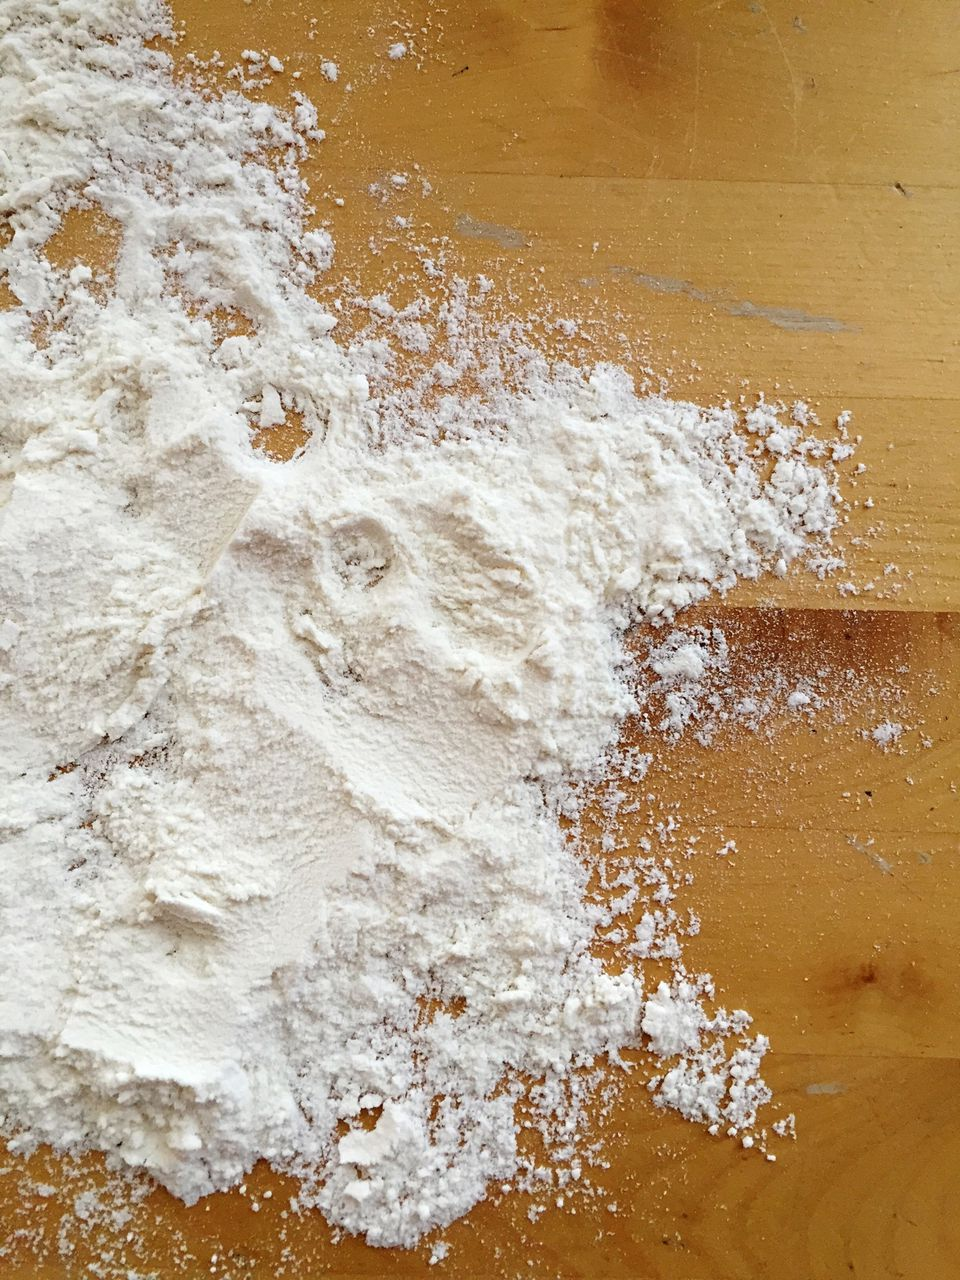 High Angle View Of Baking Soda On Wooden Table